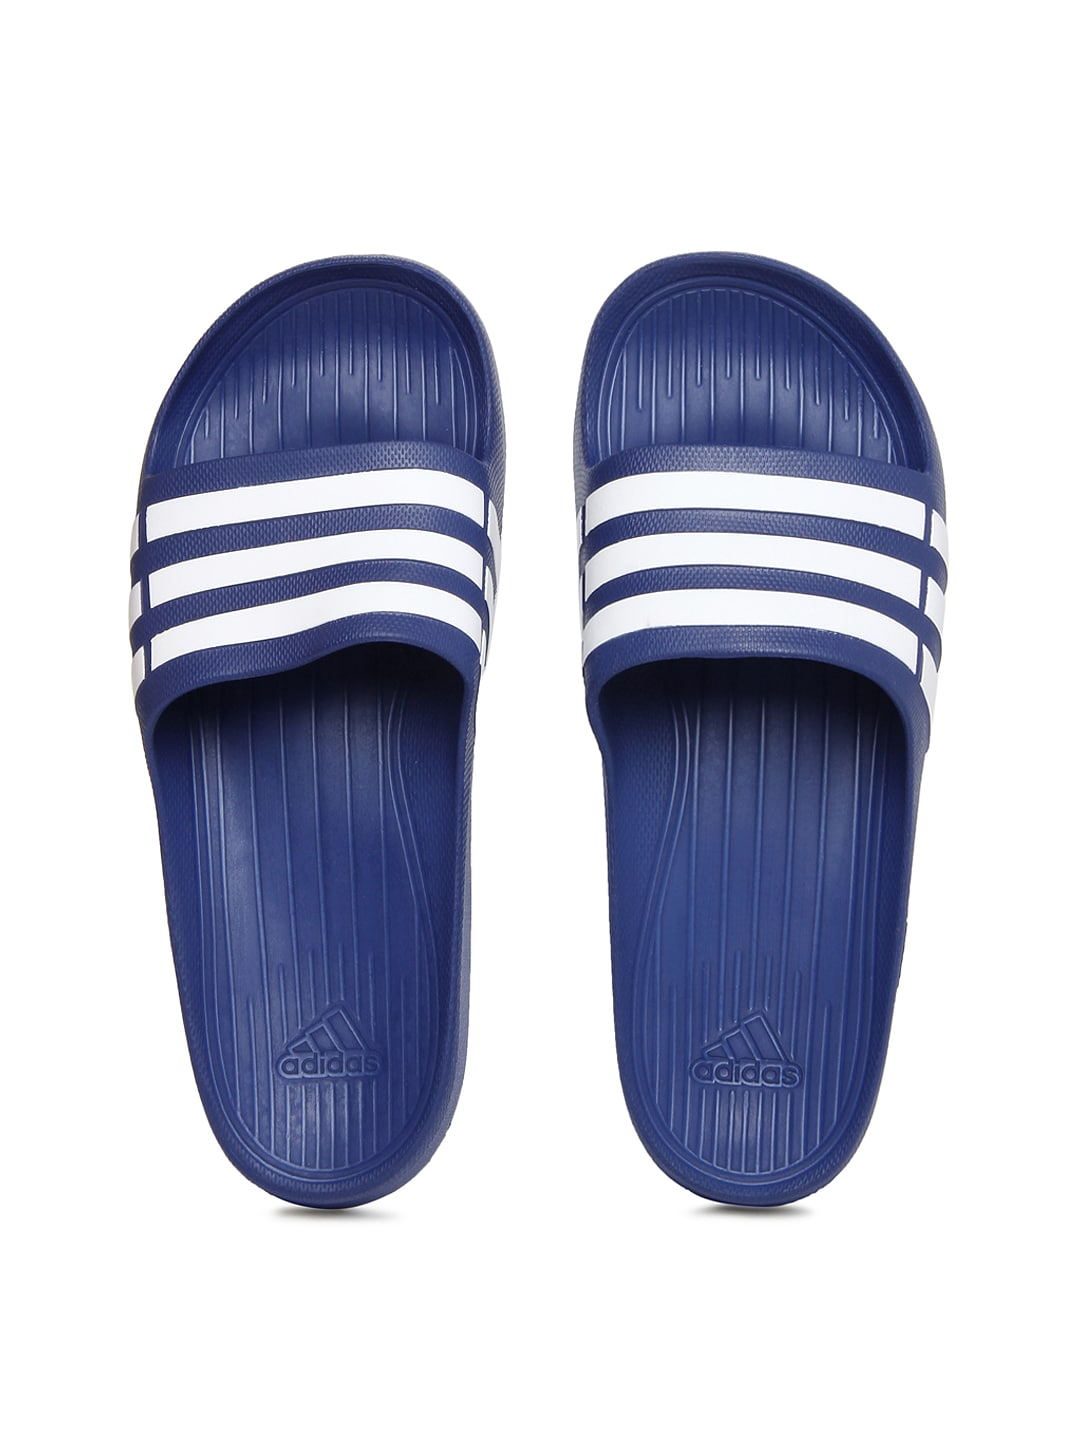 ba34a8974 Adidas g14309 Unisex Blue And White Duramo Slide Flip Flops- Price in India